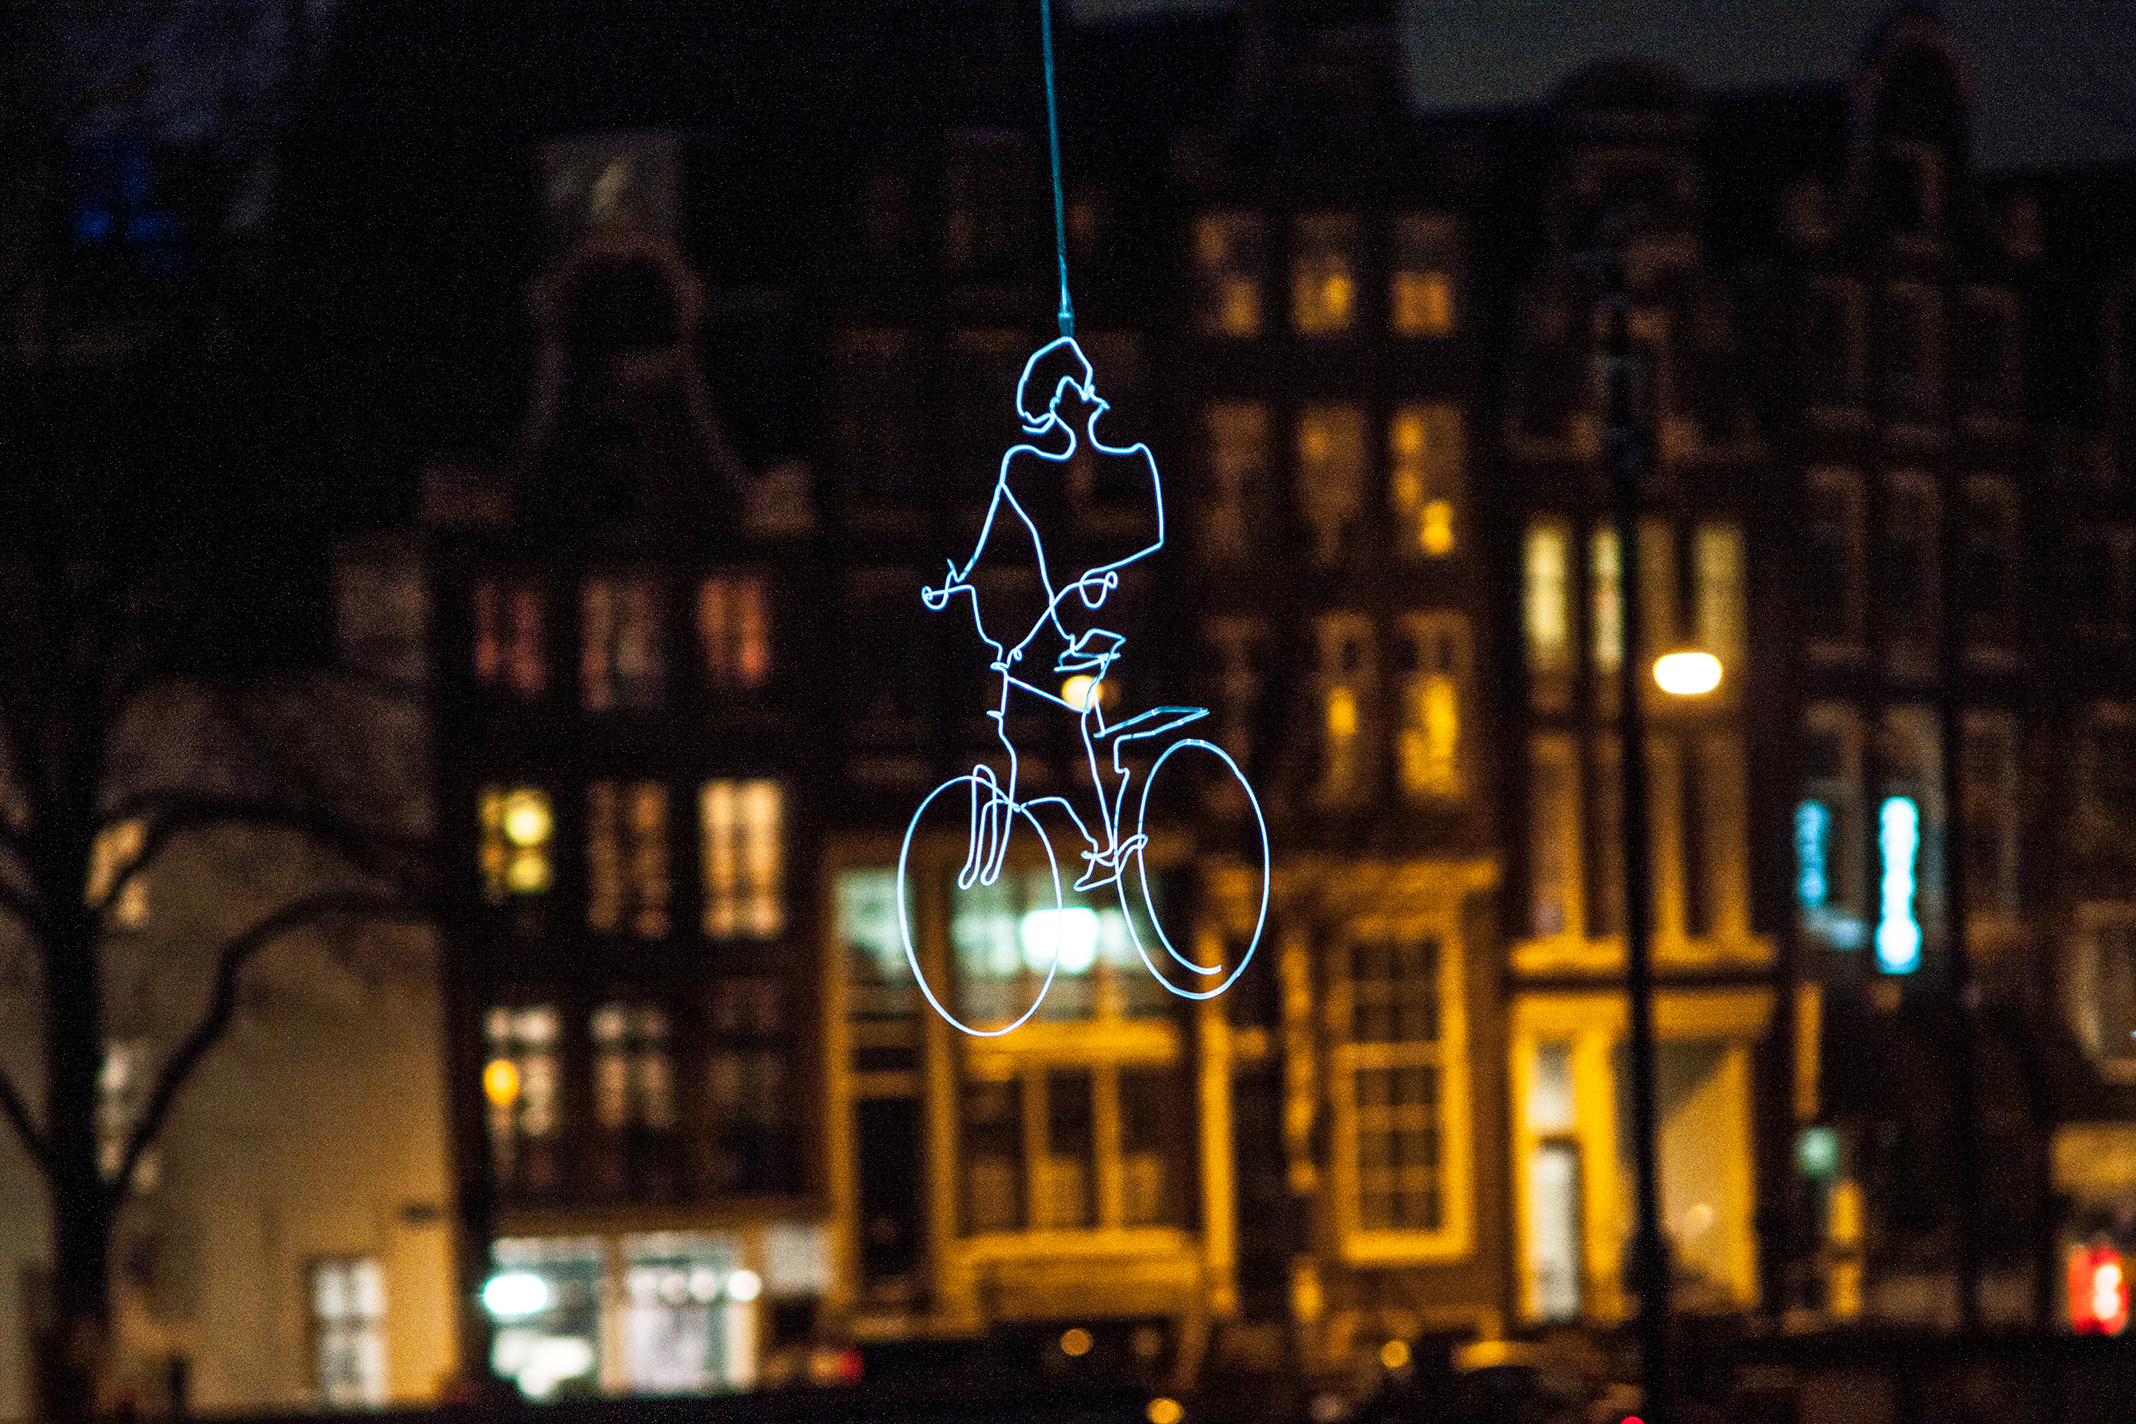 Drawn in Light, a light art installation by Ralf Westerhof, suspendend over Amsterdam canal